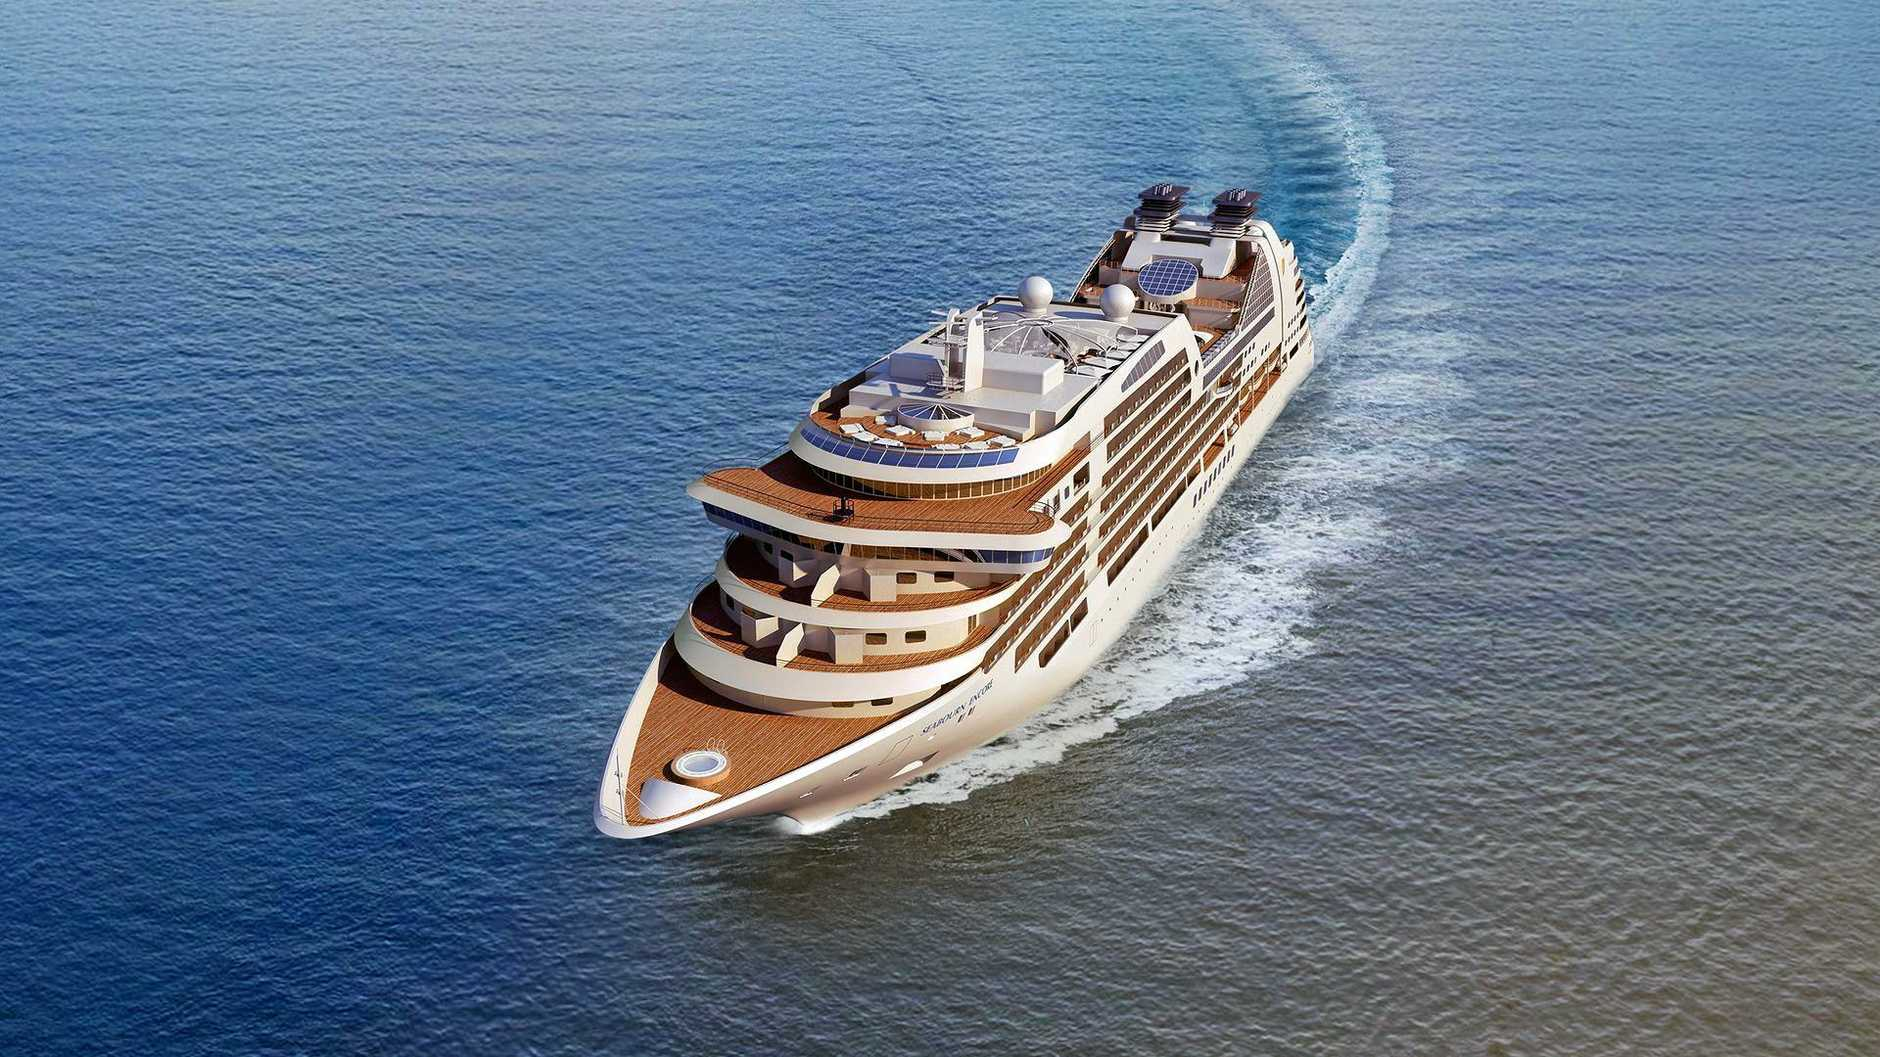 The Seabourn Encore travelling from Singapore to New Zealand will stop in at Mooloolaba this Saturday.